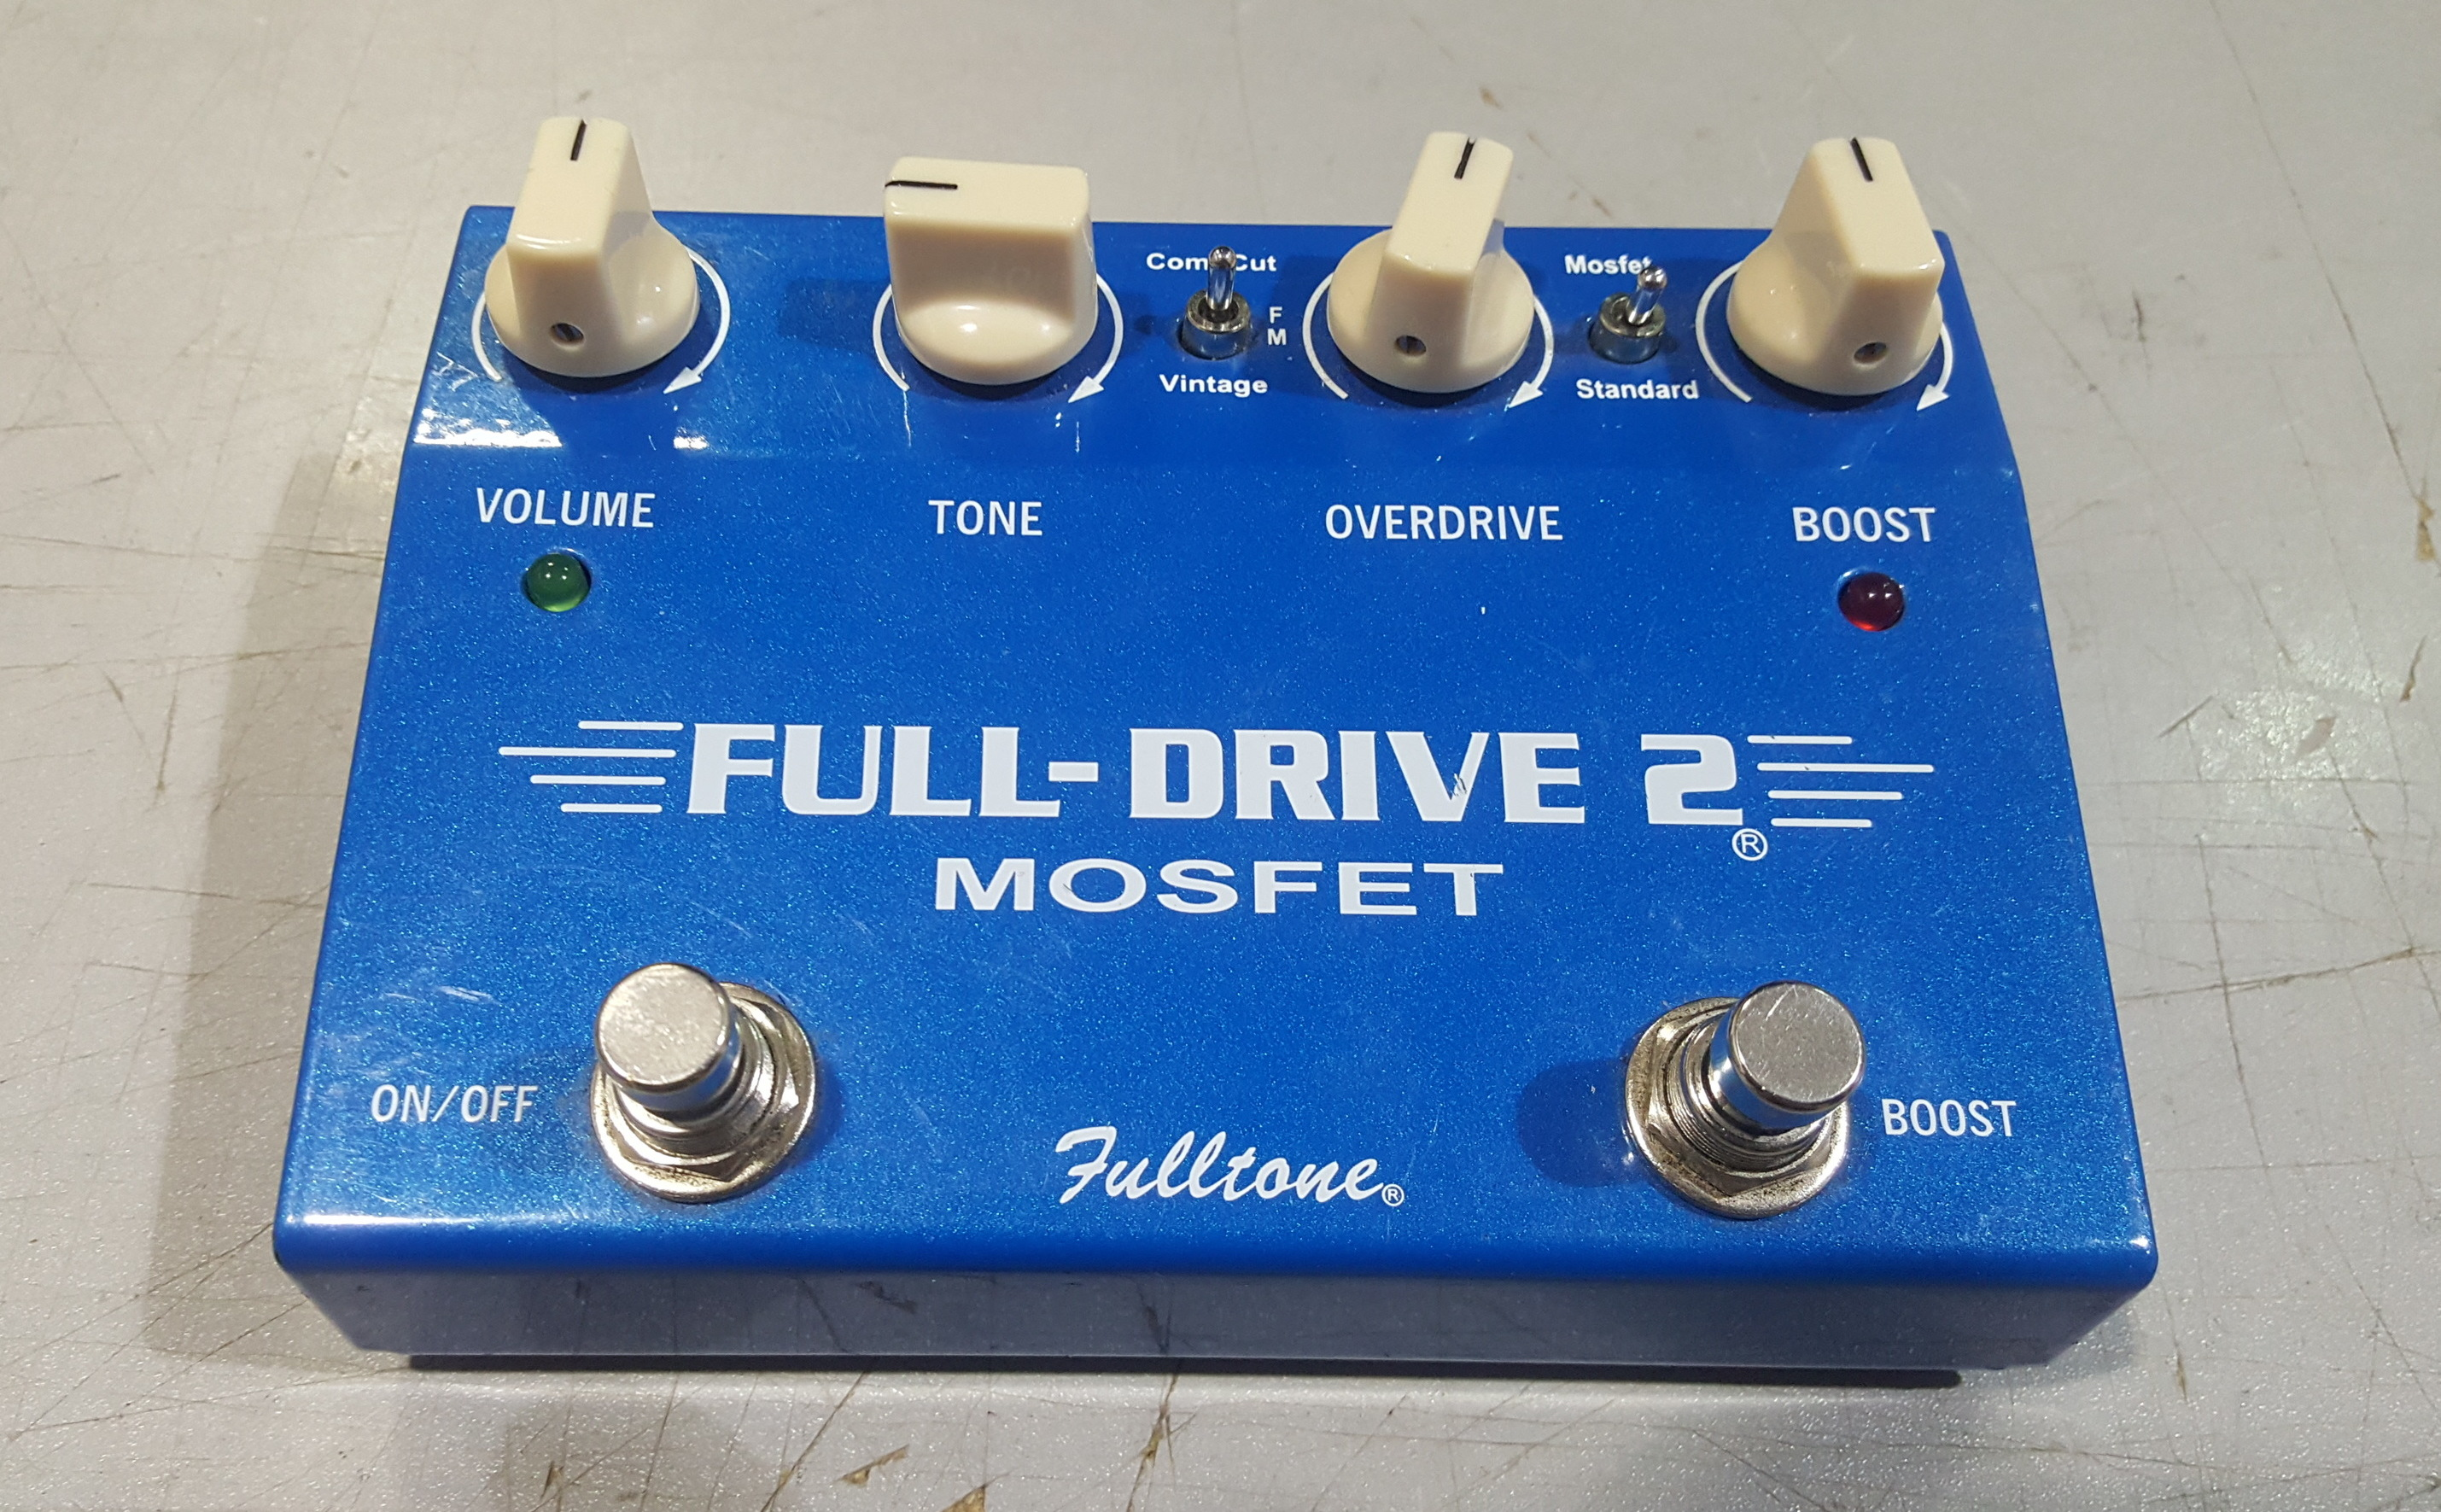 FULLTONE FULL-DRIVE 2 MOSFET Overdrive/Boost Guitar FX Effects Pedal